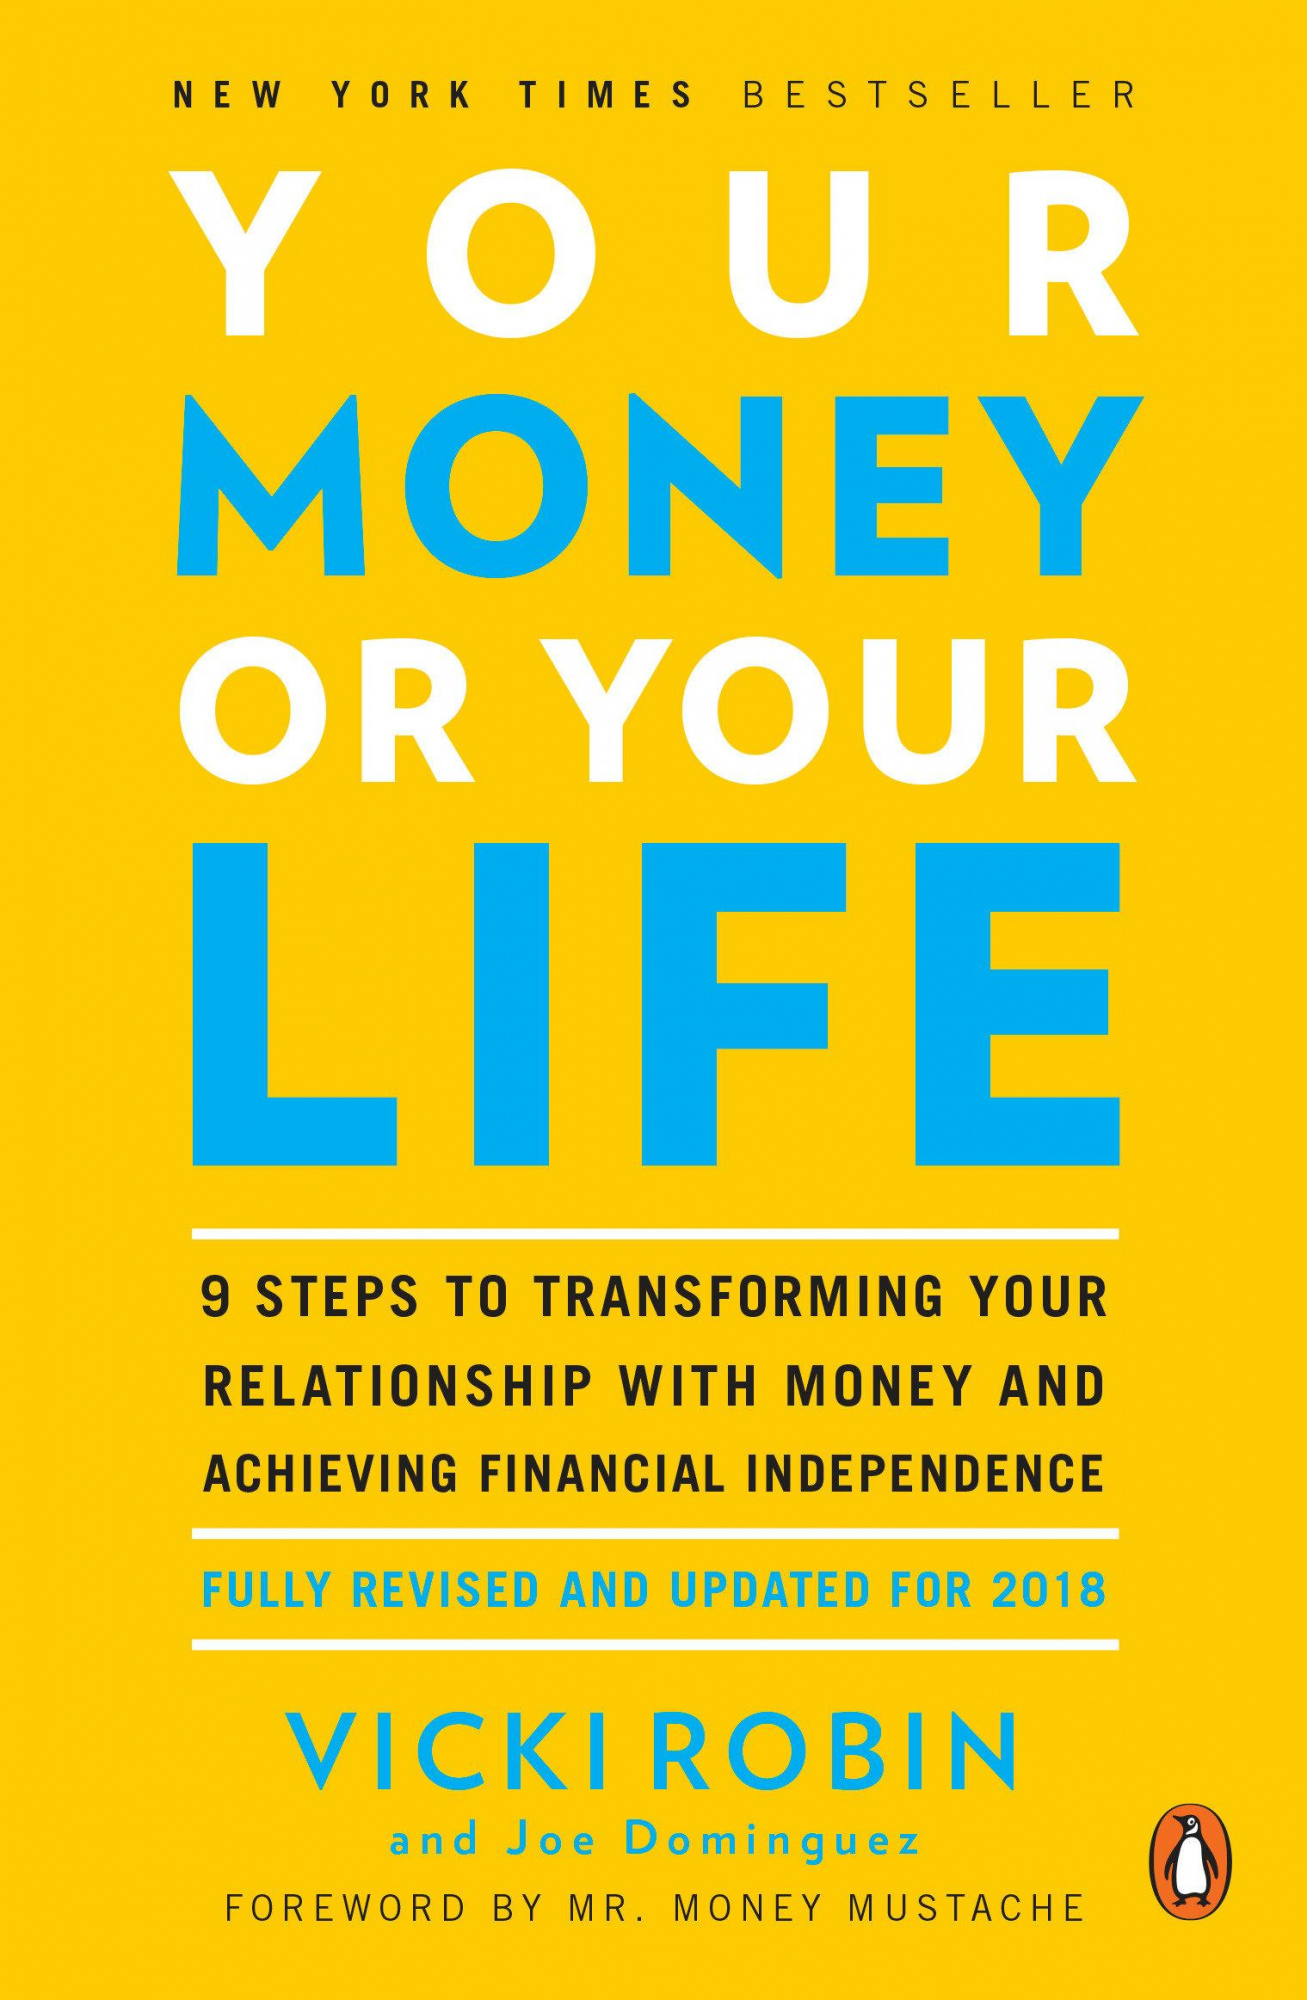 Your Money Or Your Life: 9 Steps to Transforming Your Relationship with Money and Achieving Financial Independence: Revised and Updated for the 21st Century by Joe Dominguez, ISBN: 9780143115762